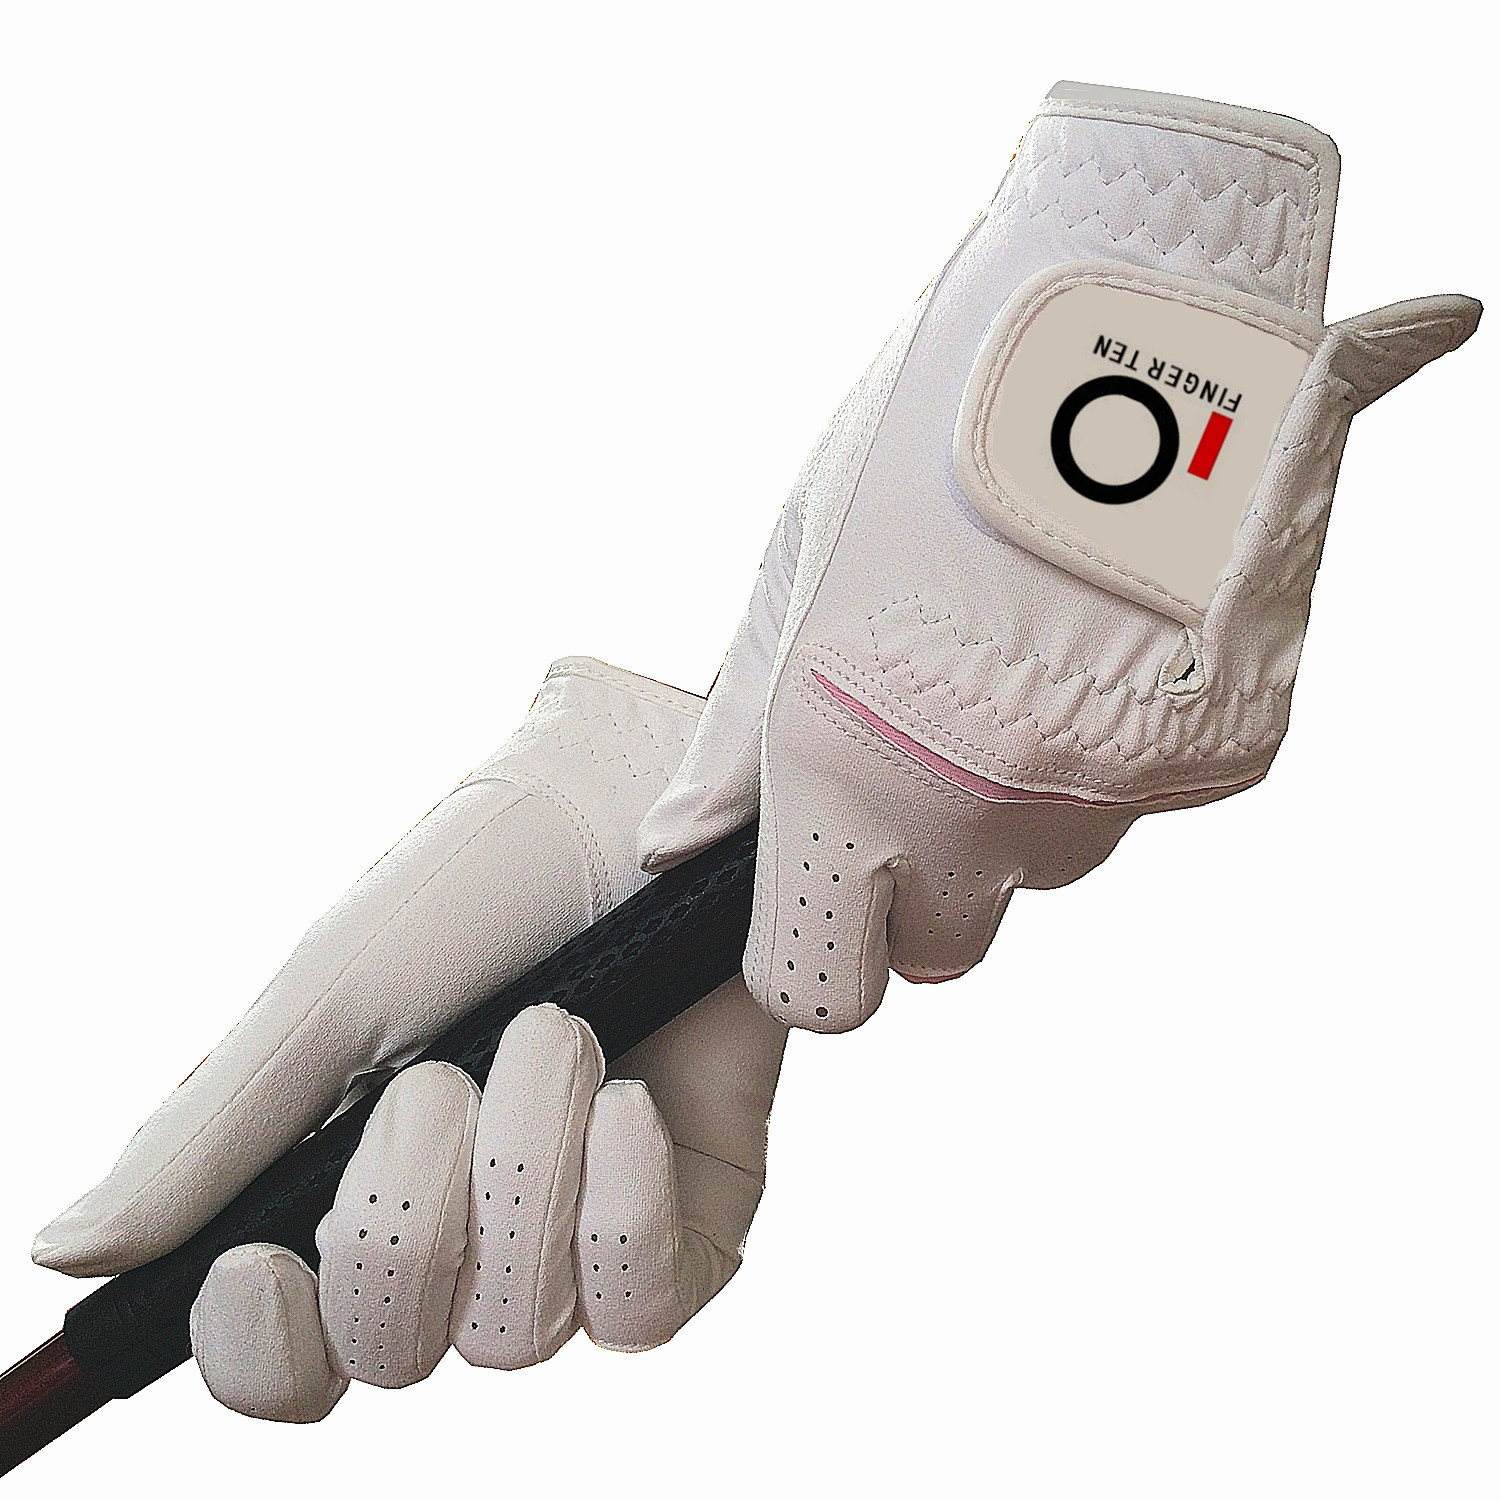 Womens Golf Gloves Pair Rain Hot Wet Weather Grip Value Pack, Ladies Left and Right Hand Small Large Medium Pr Finger Ten